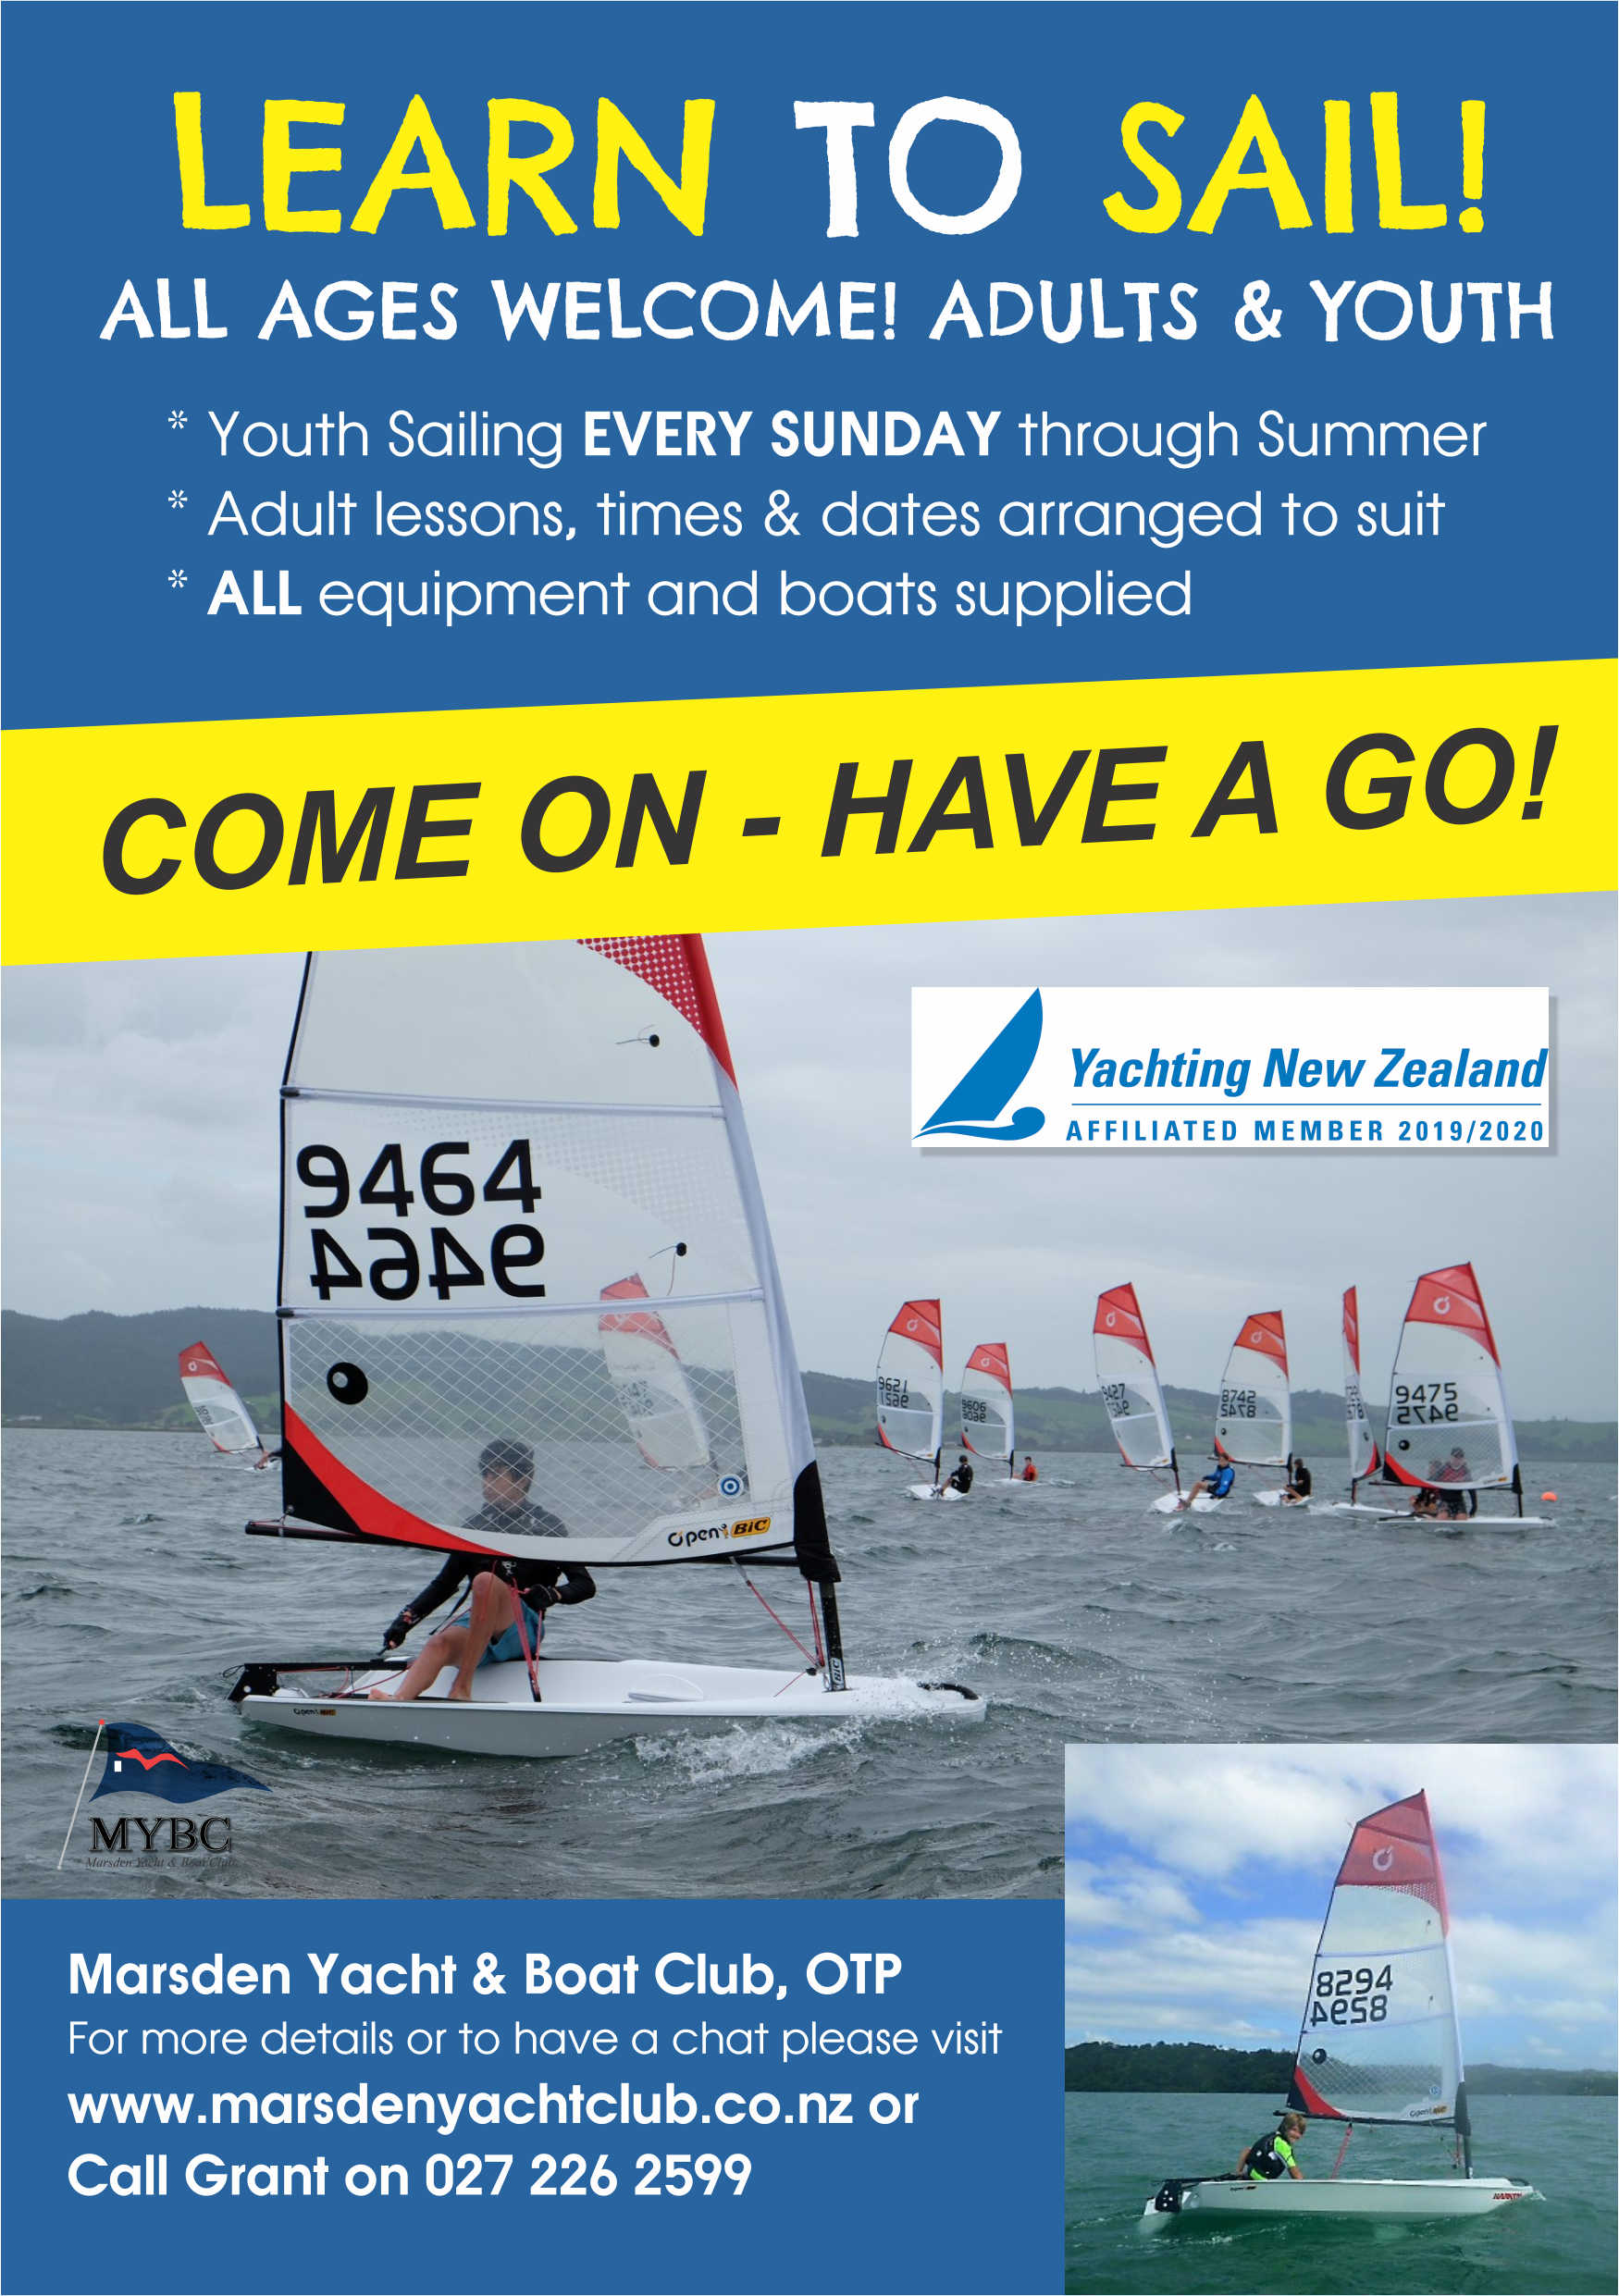 Learn to sail poster 2020